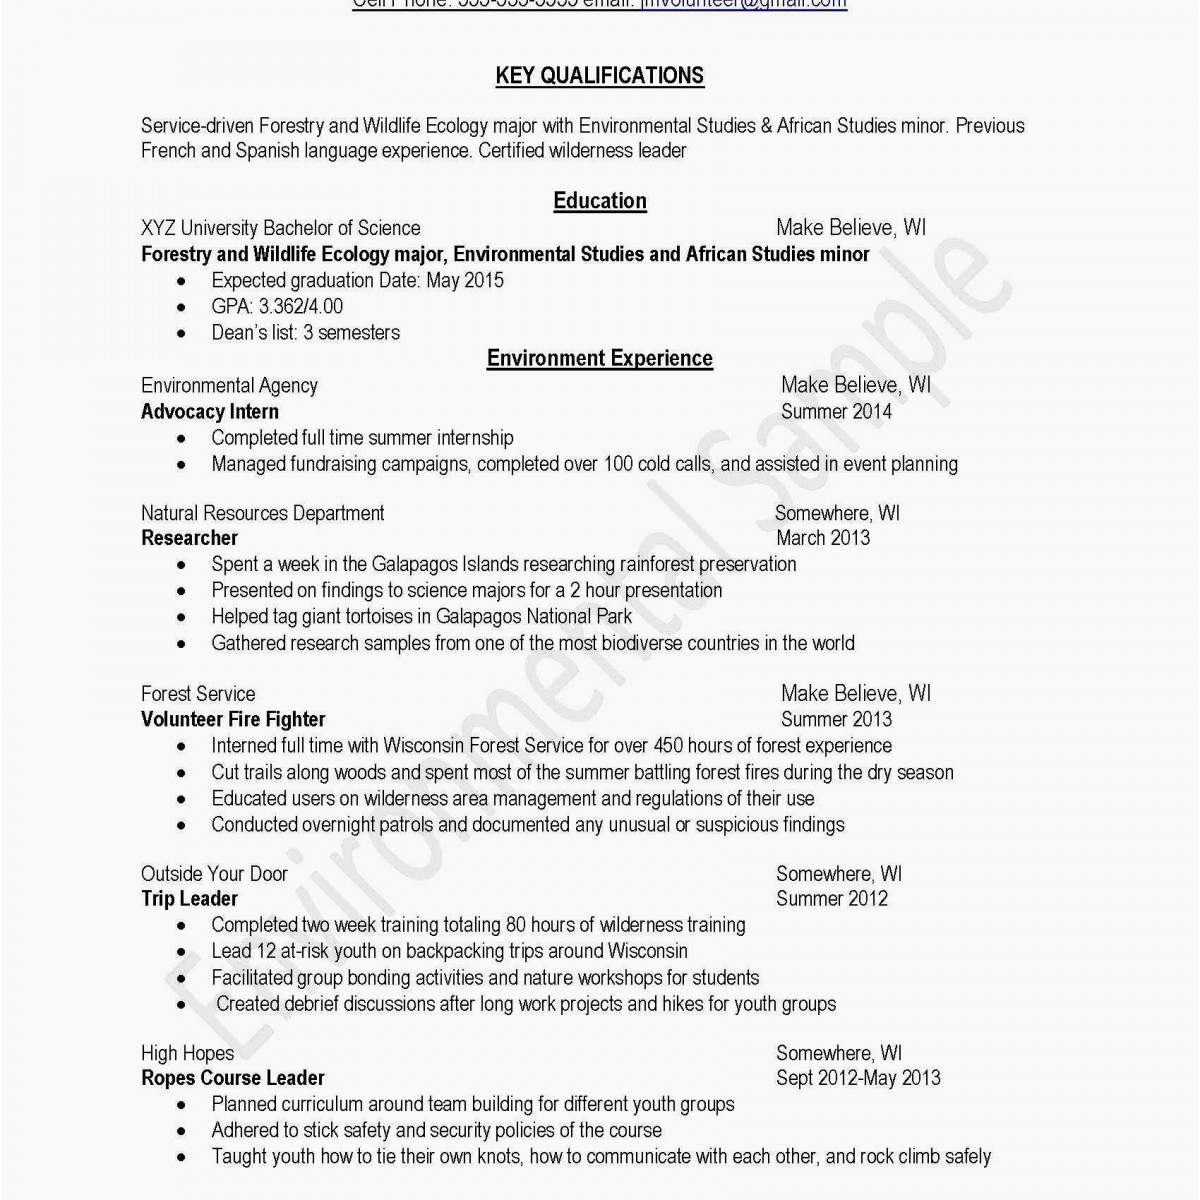 resume writing workshop flyer example-Resume Writing Tips Luxury Beautiful Examples Resumes Ecologist from Resume Writing Tips source pour eux 13-r